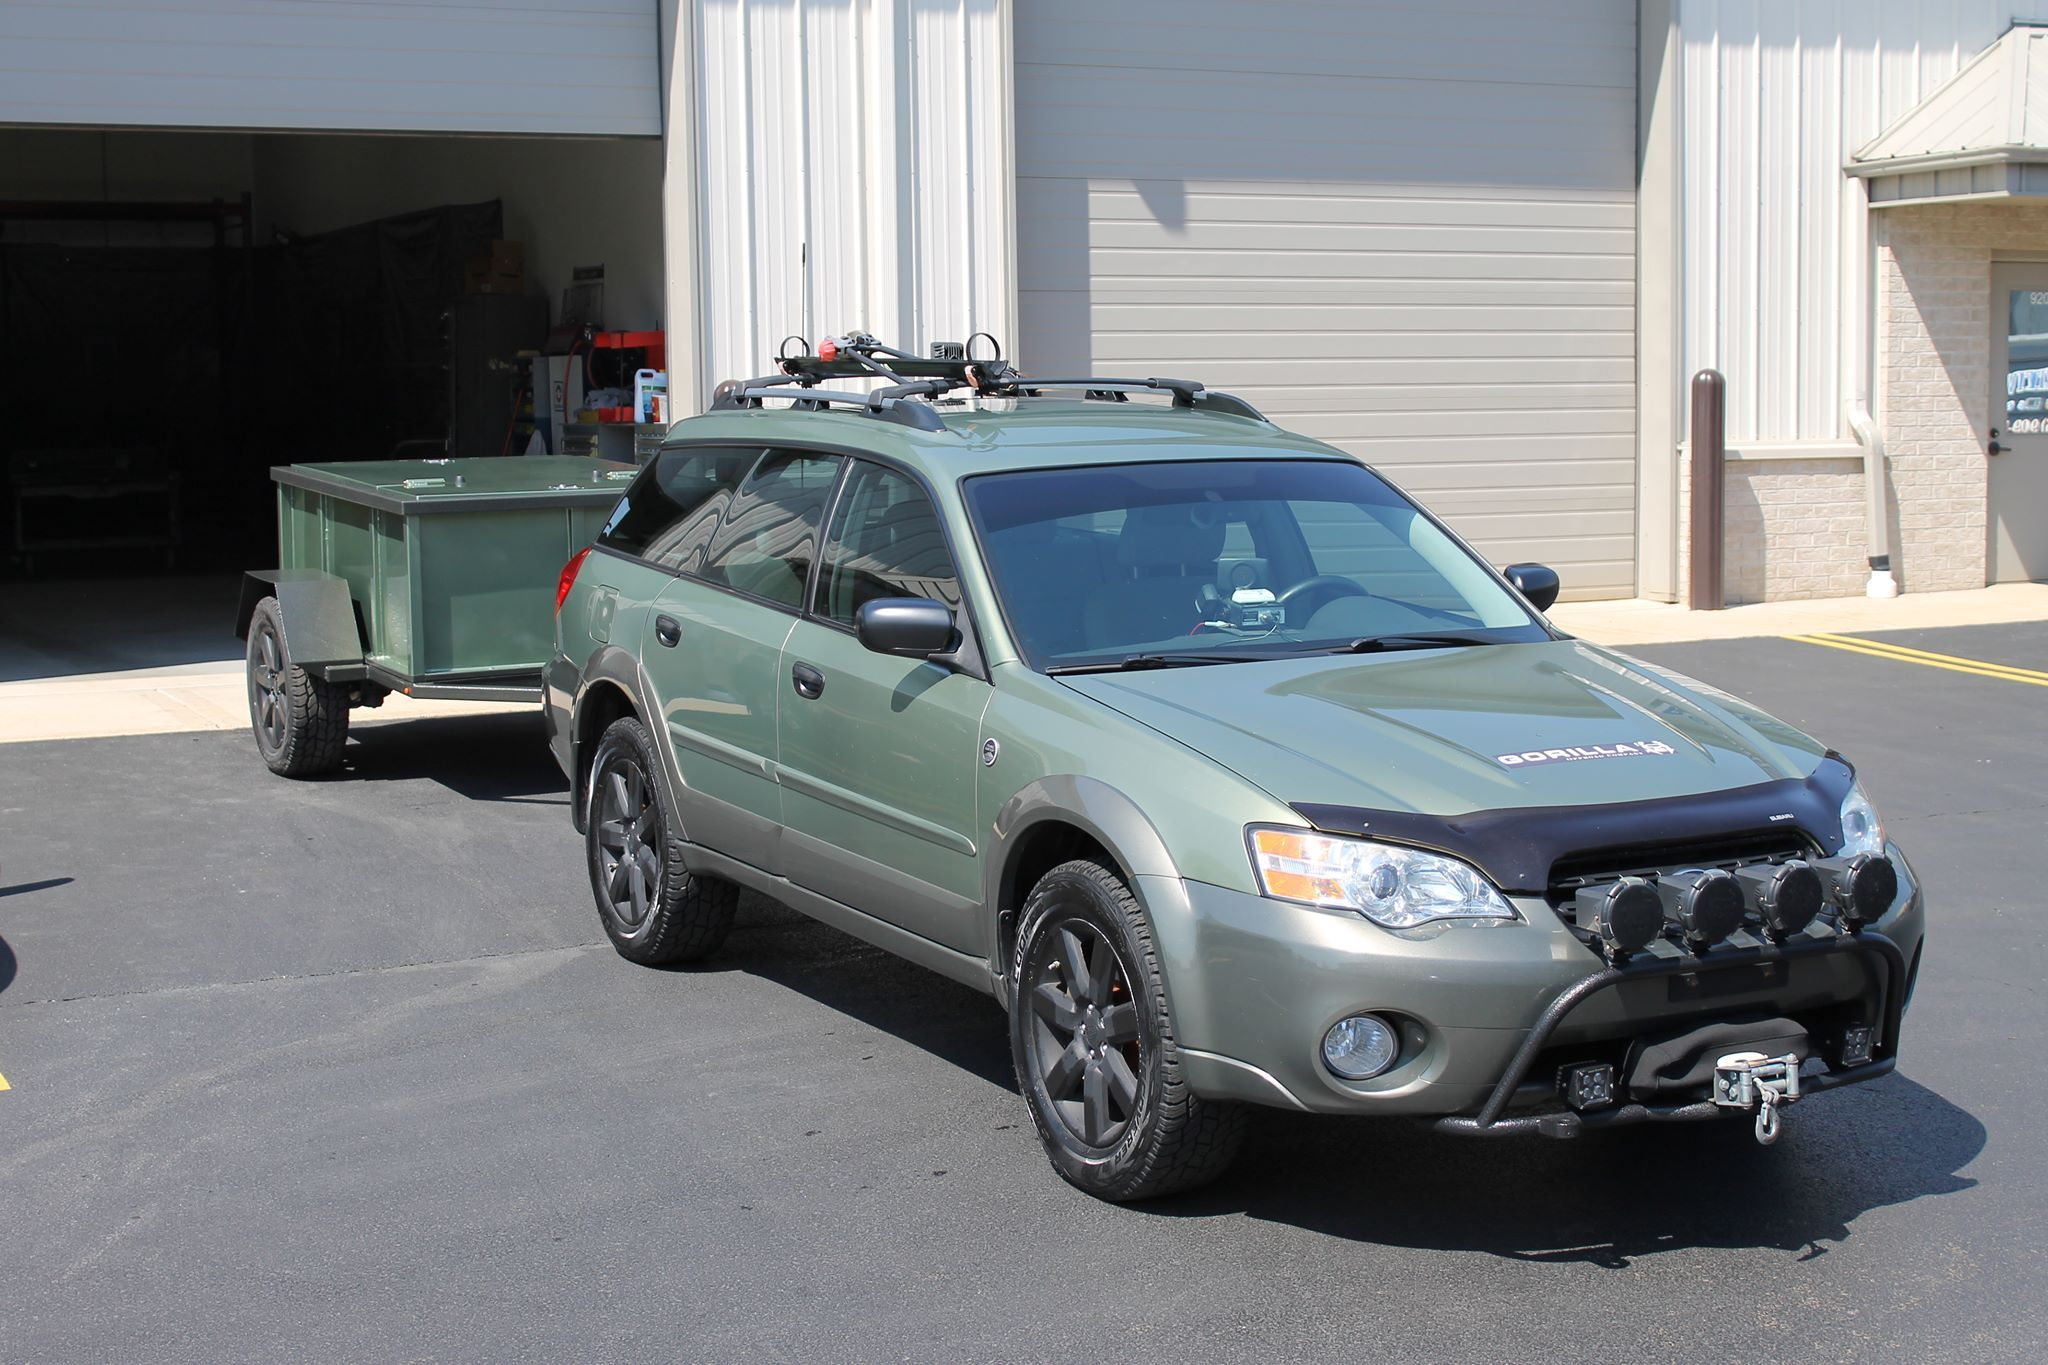 2007 Subaru Outback 2 5 Gorilla Offroad Bar W Skid Plate And Winch Mount Superwinch Terra 45 Winch 2 2 5 Subaru Outback Offroad Outback Car Subaru Legacy